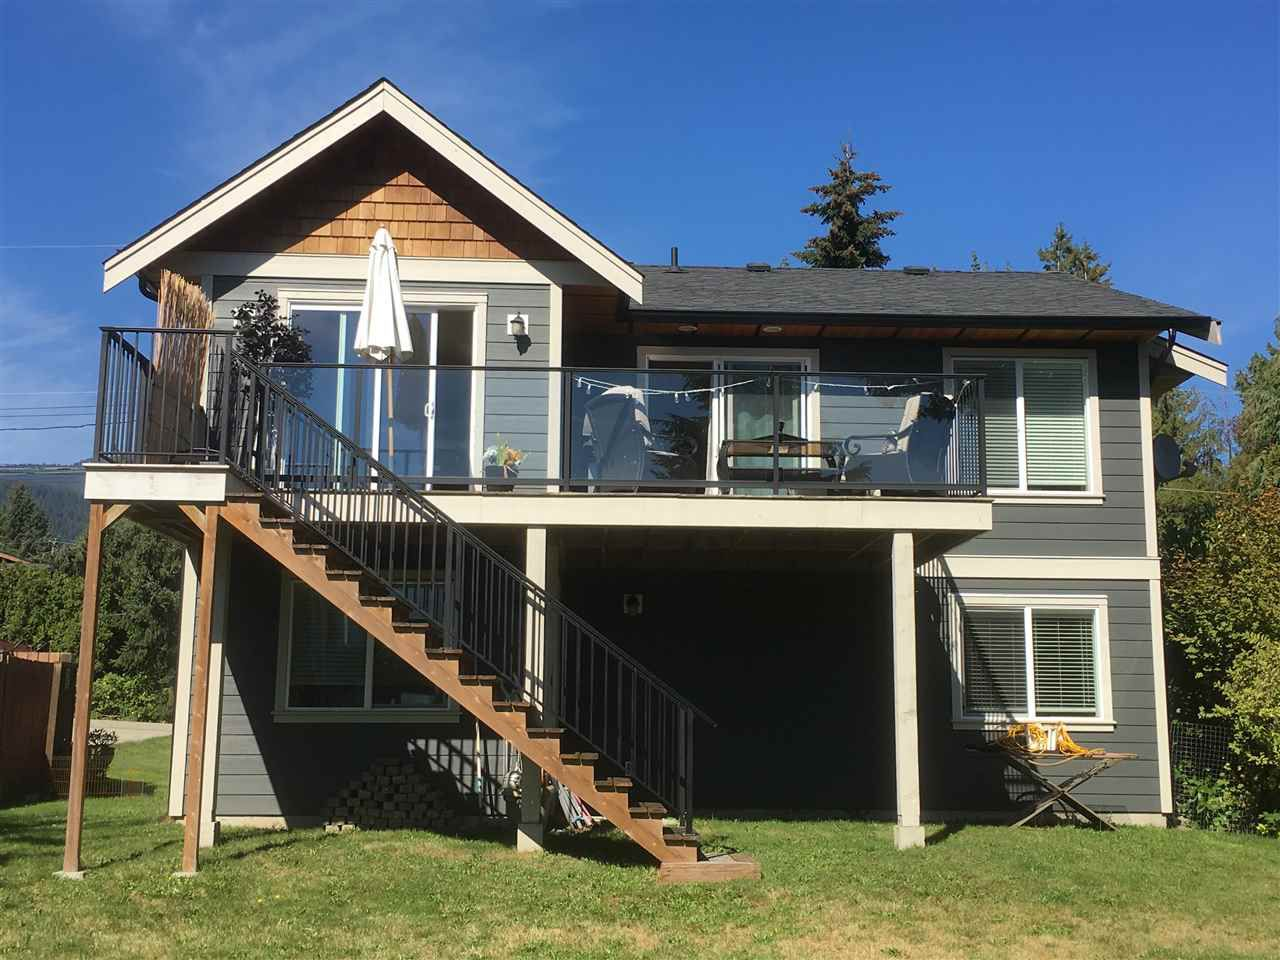 Photo 2: Photos: 733 TRICKLEBROOK Way in Gibsons: Gibsons & Area House for sale (Sunshine Coast)  : MLS®# R2109437